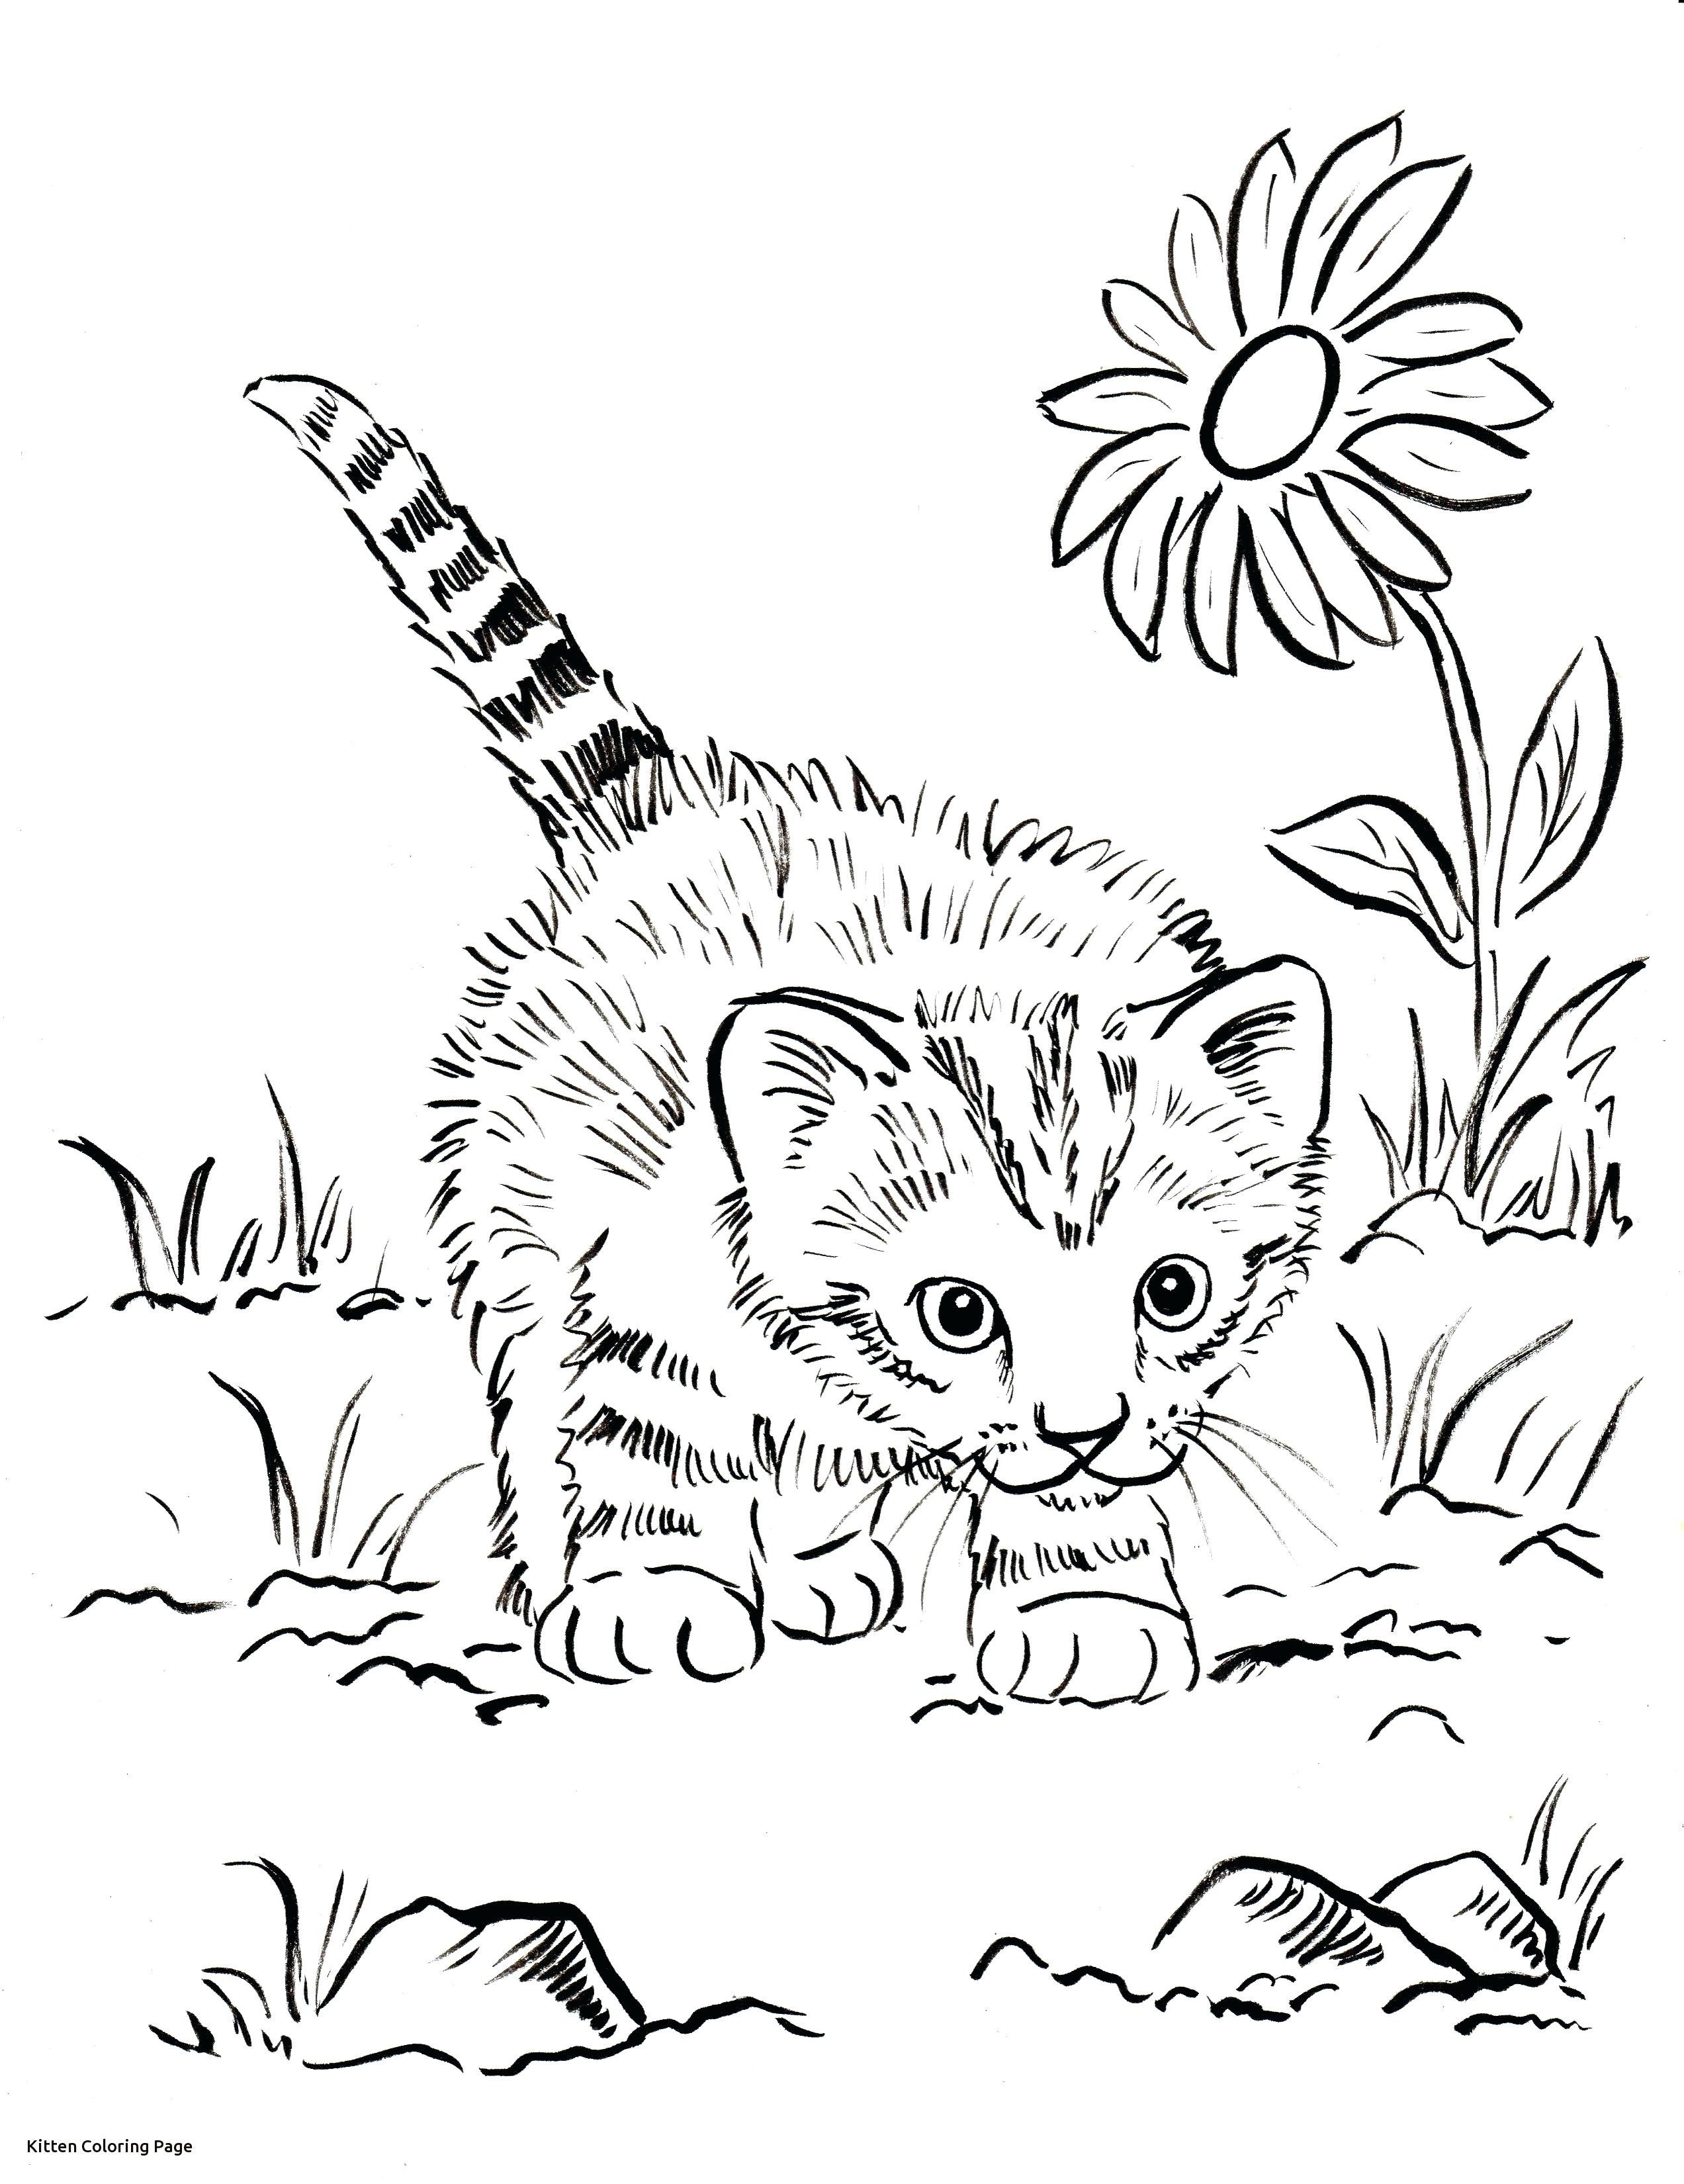 Kittens Coloring Pages Latest Coloring Pages Of Real Kittens 16 Best Printable Kitten